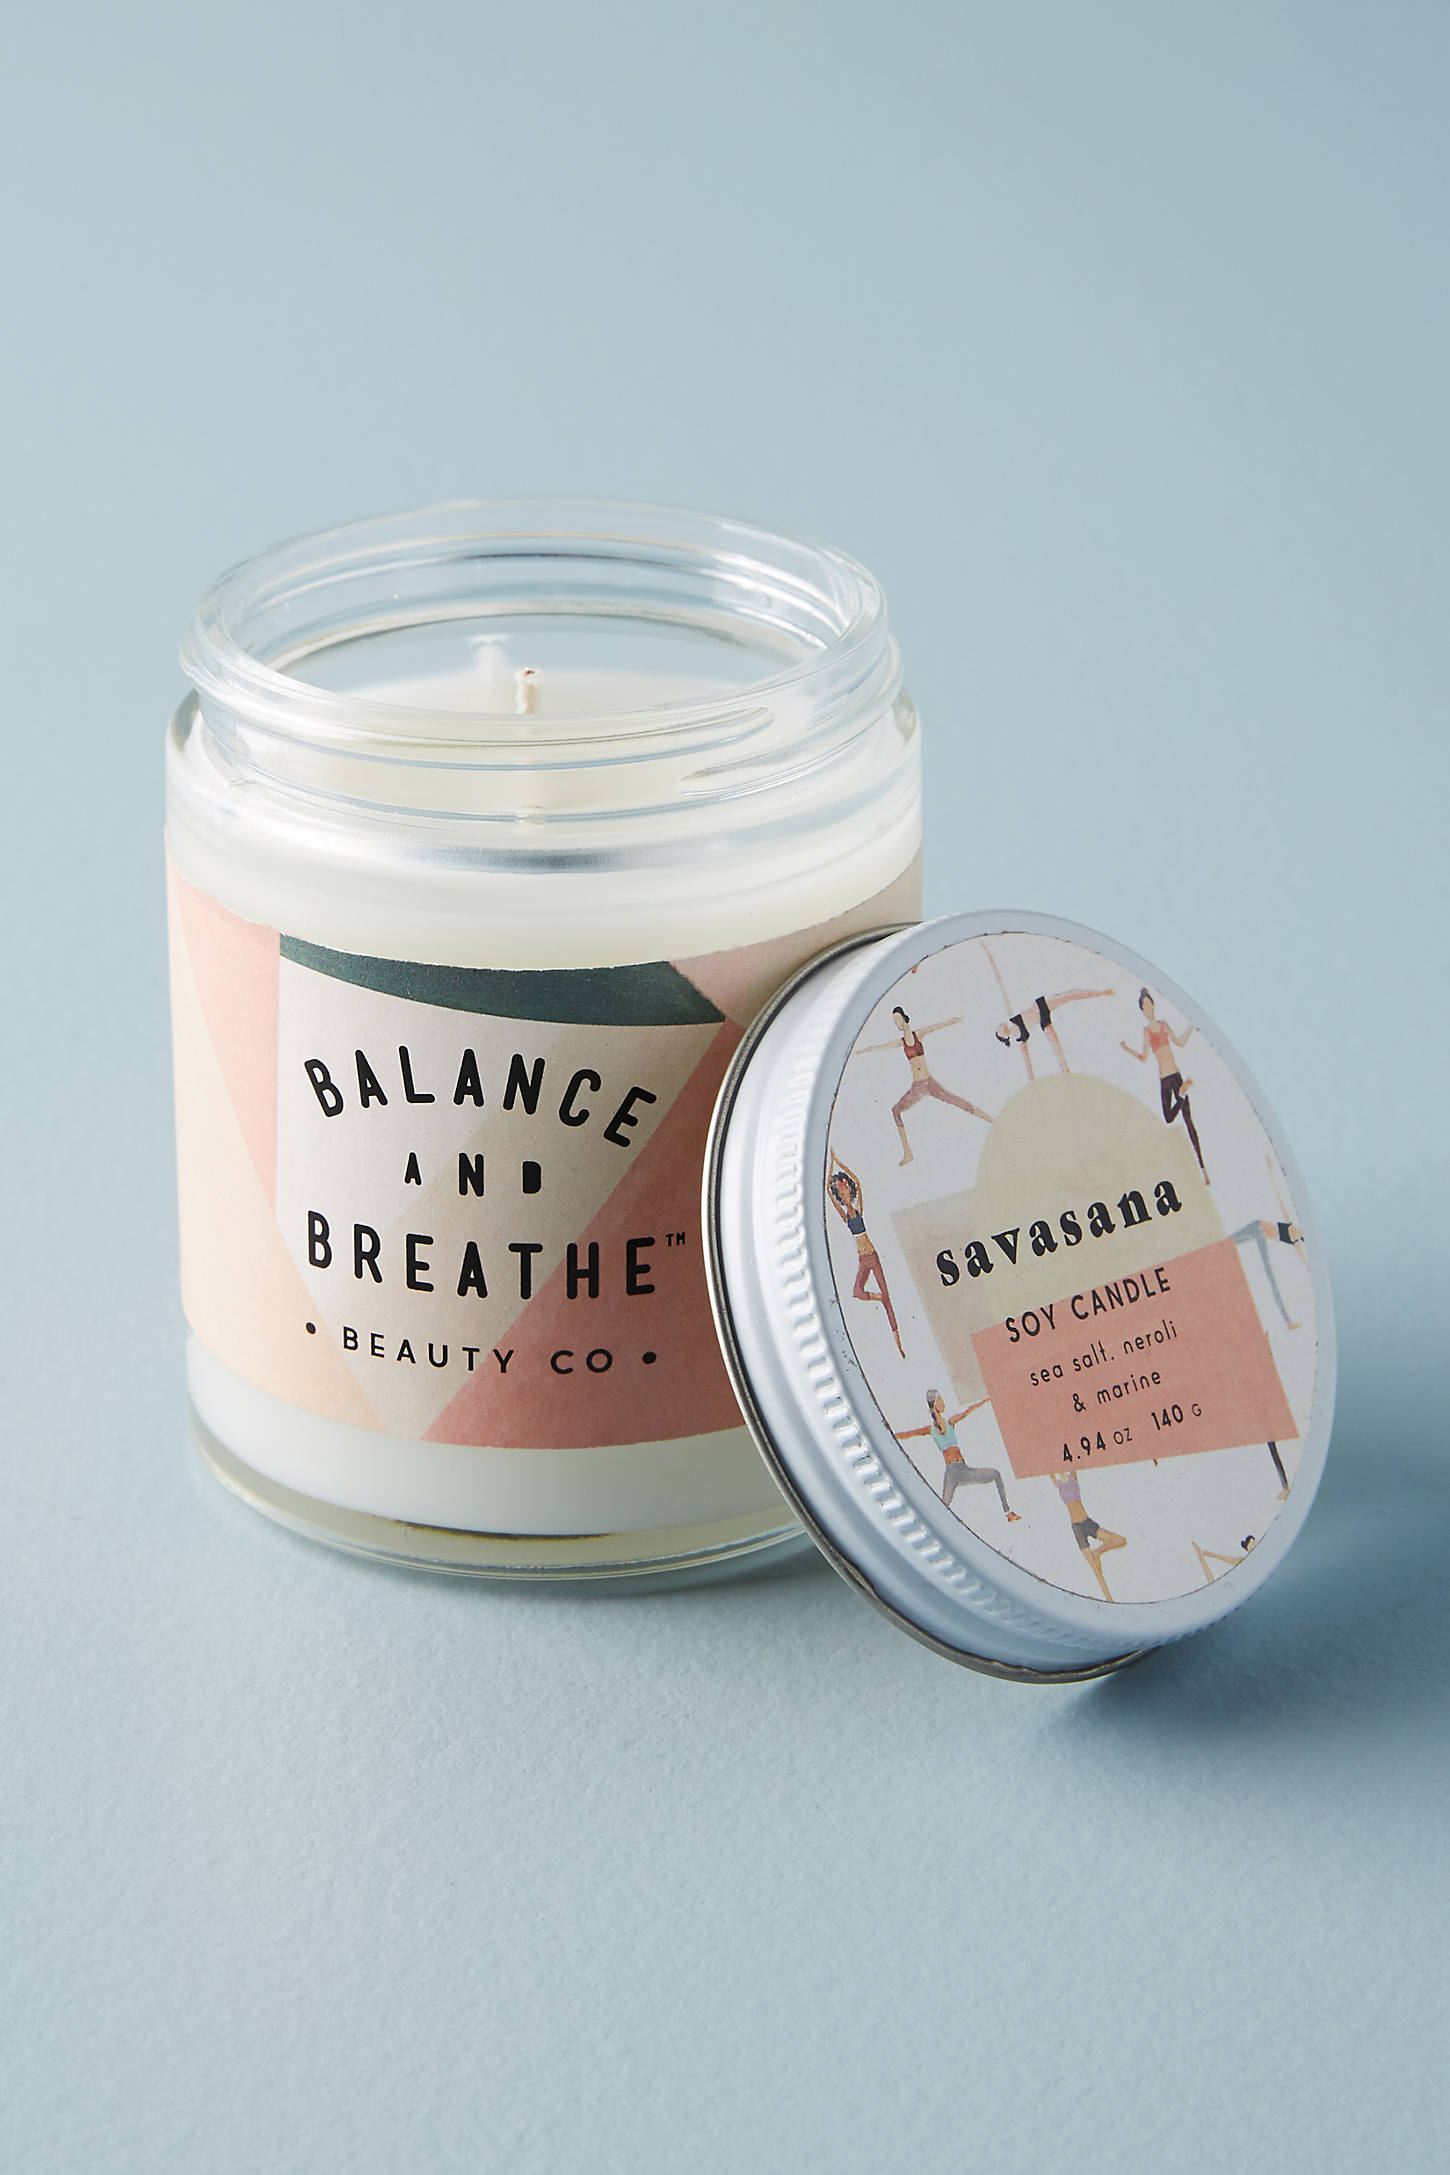 Balance and Breathe Yoga Candle